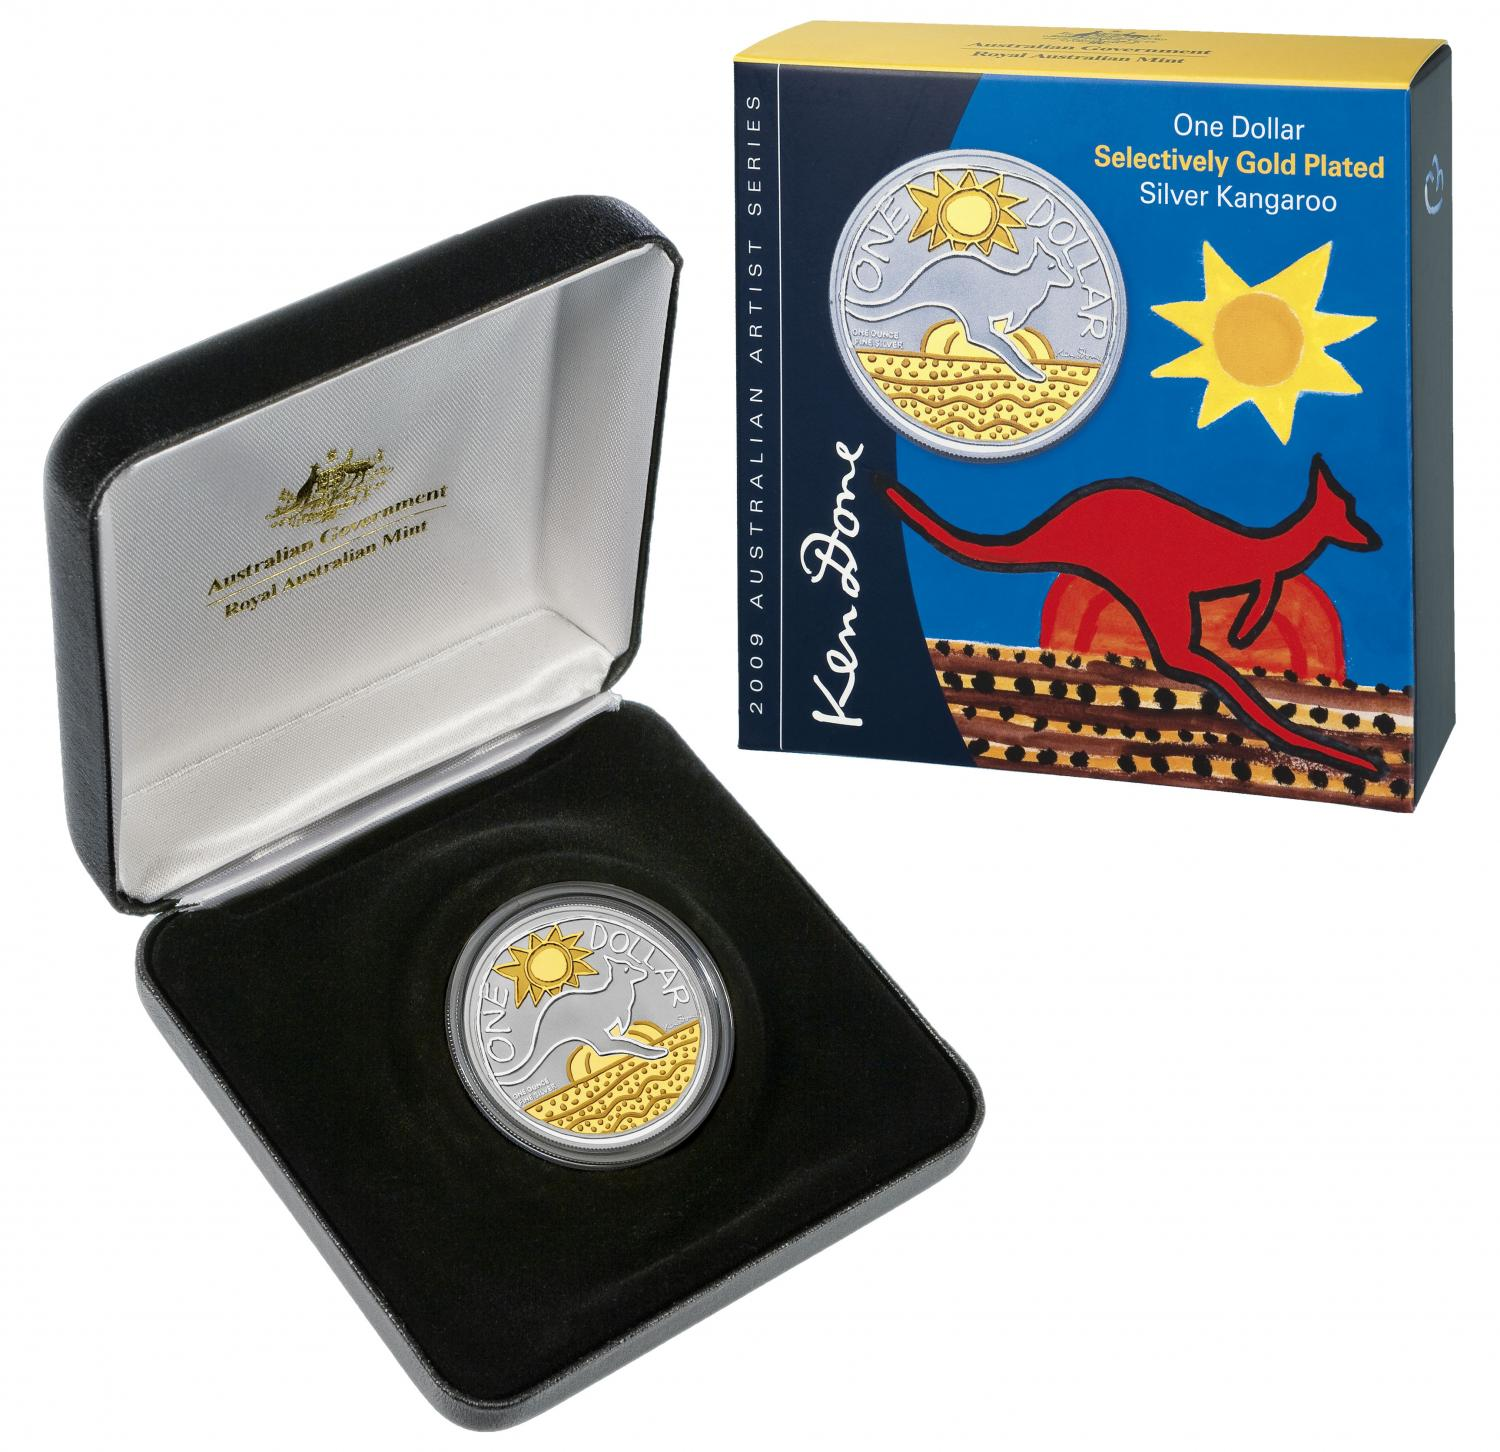 Thumbnail for 2009 Selectively Gold Plated 1oz Silver Proof Kangaroo Ken Done Design